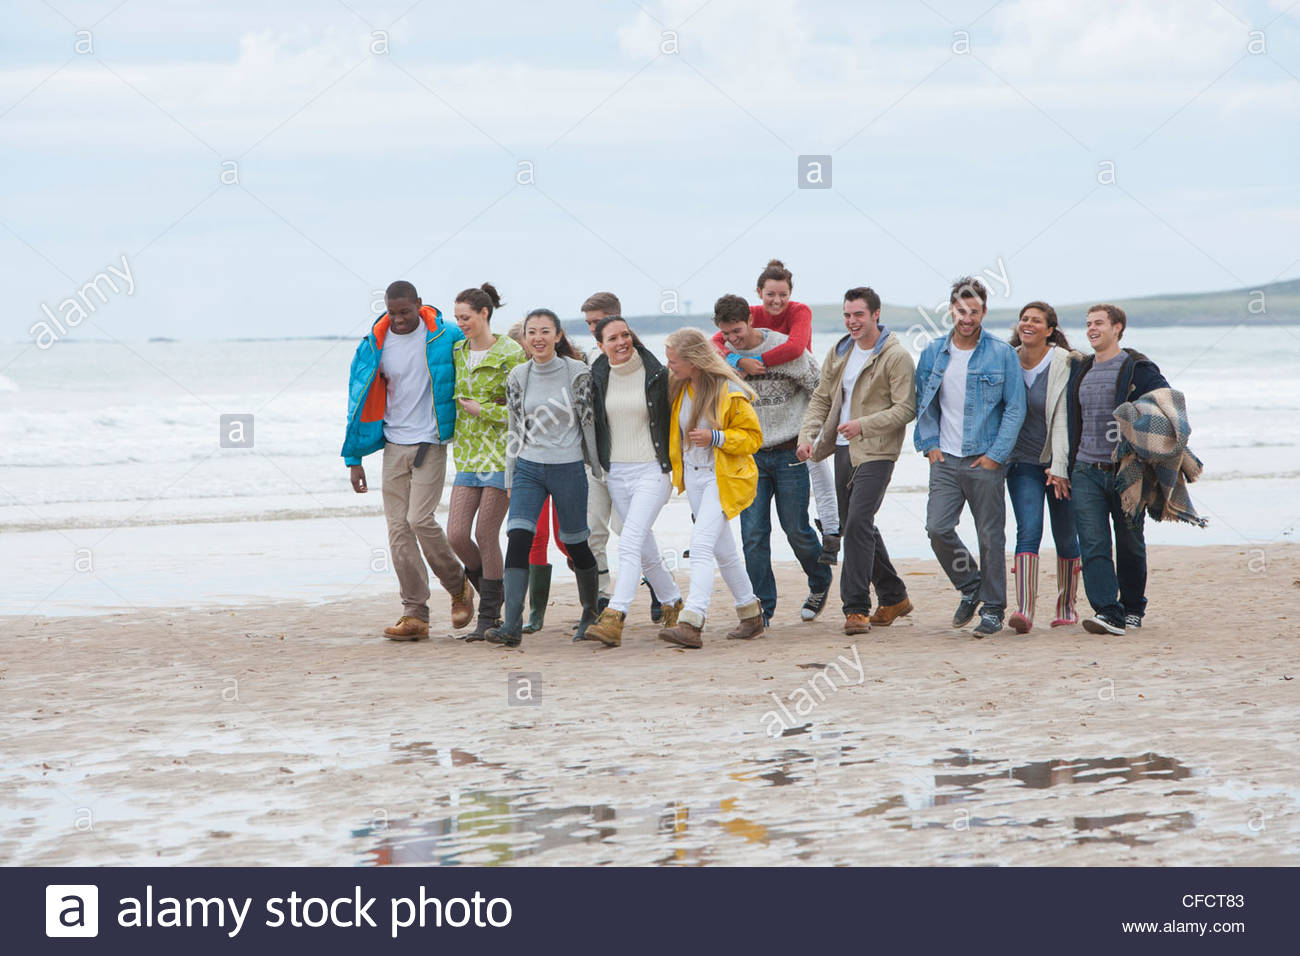 Large group of friends walking on beach - Stock Image